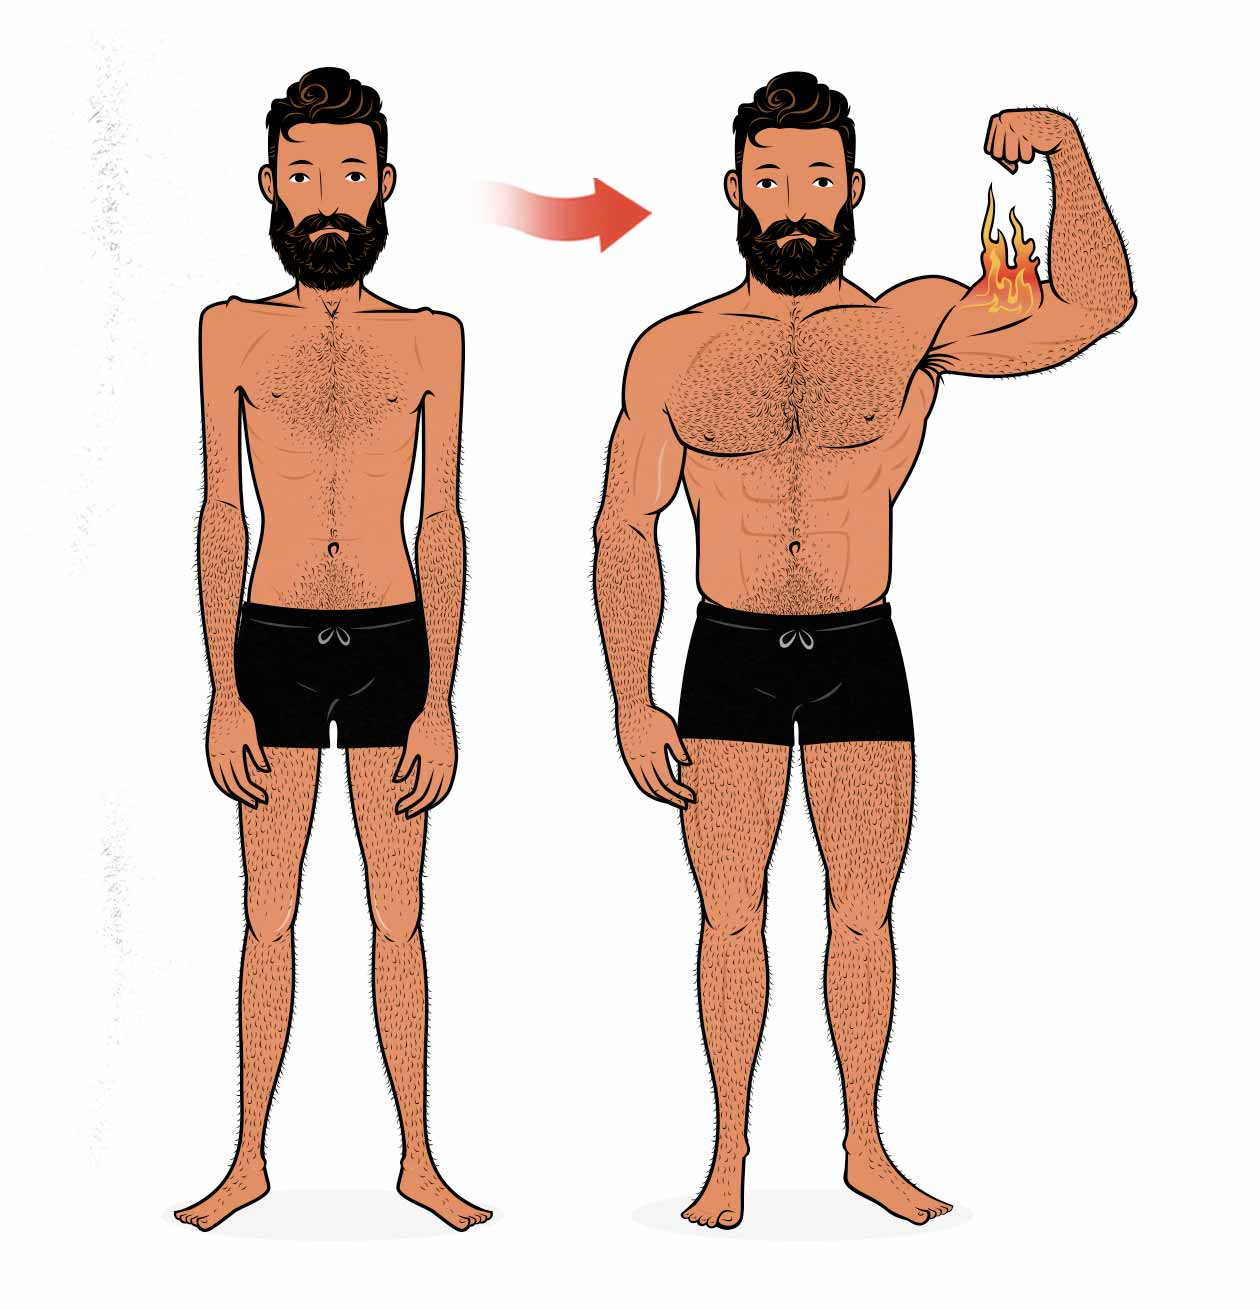 Before and after illustration of a skinny guy building muscle using a push/pull/legs workout routine.